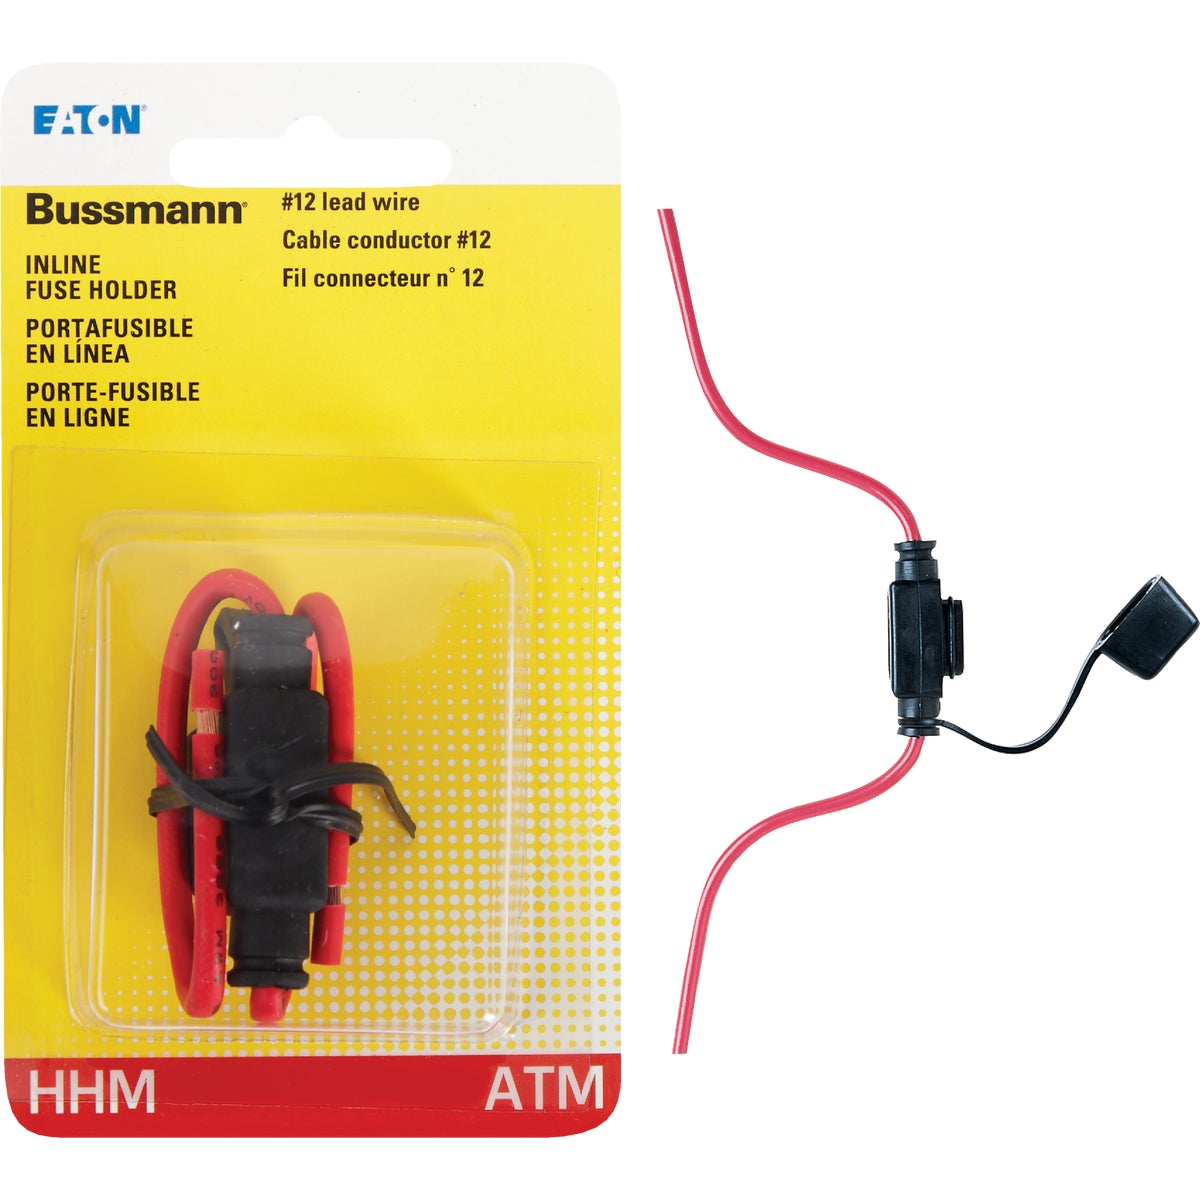 ATM INLINE FUSE HOLDER - BP/HHM-RP by Bussmann Cooper